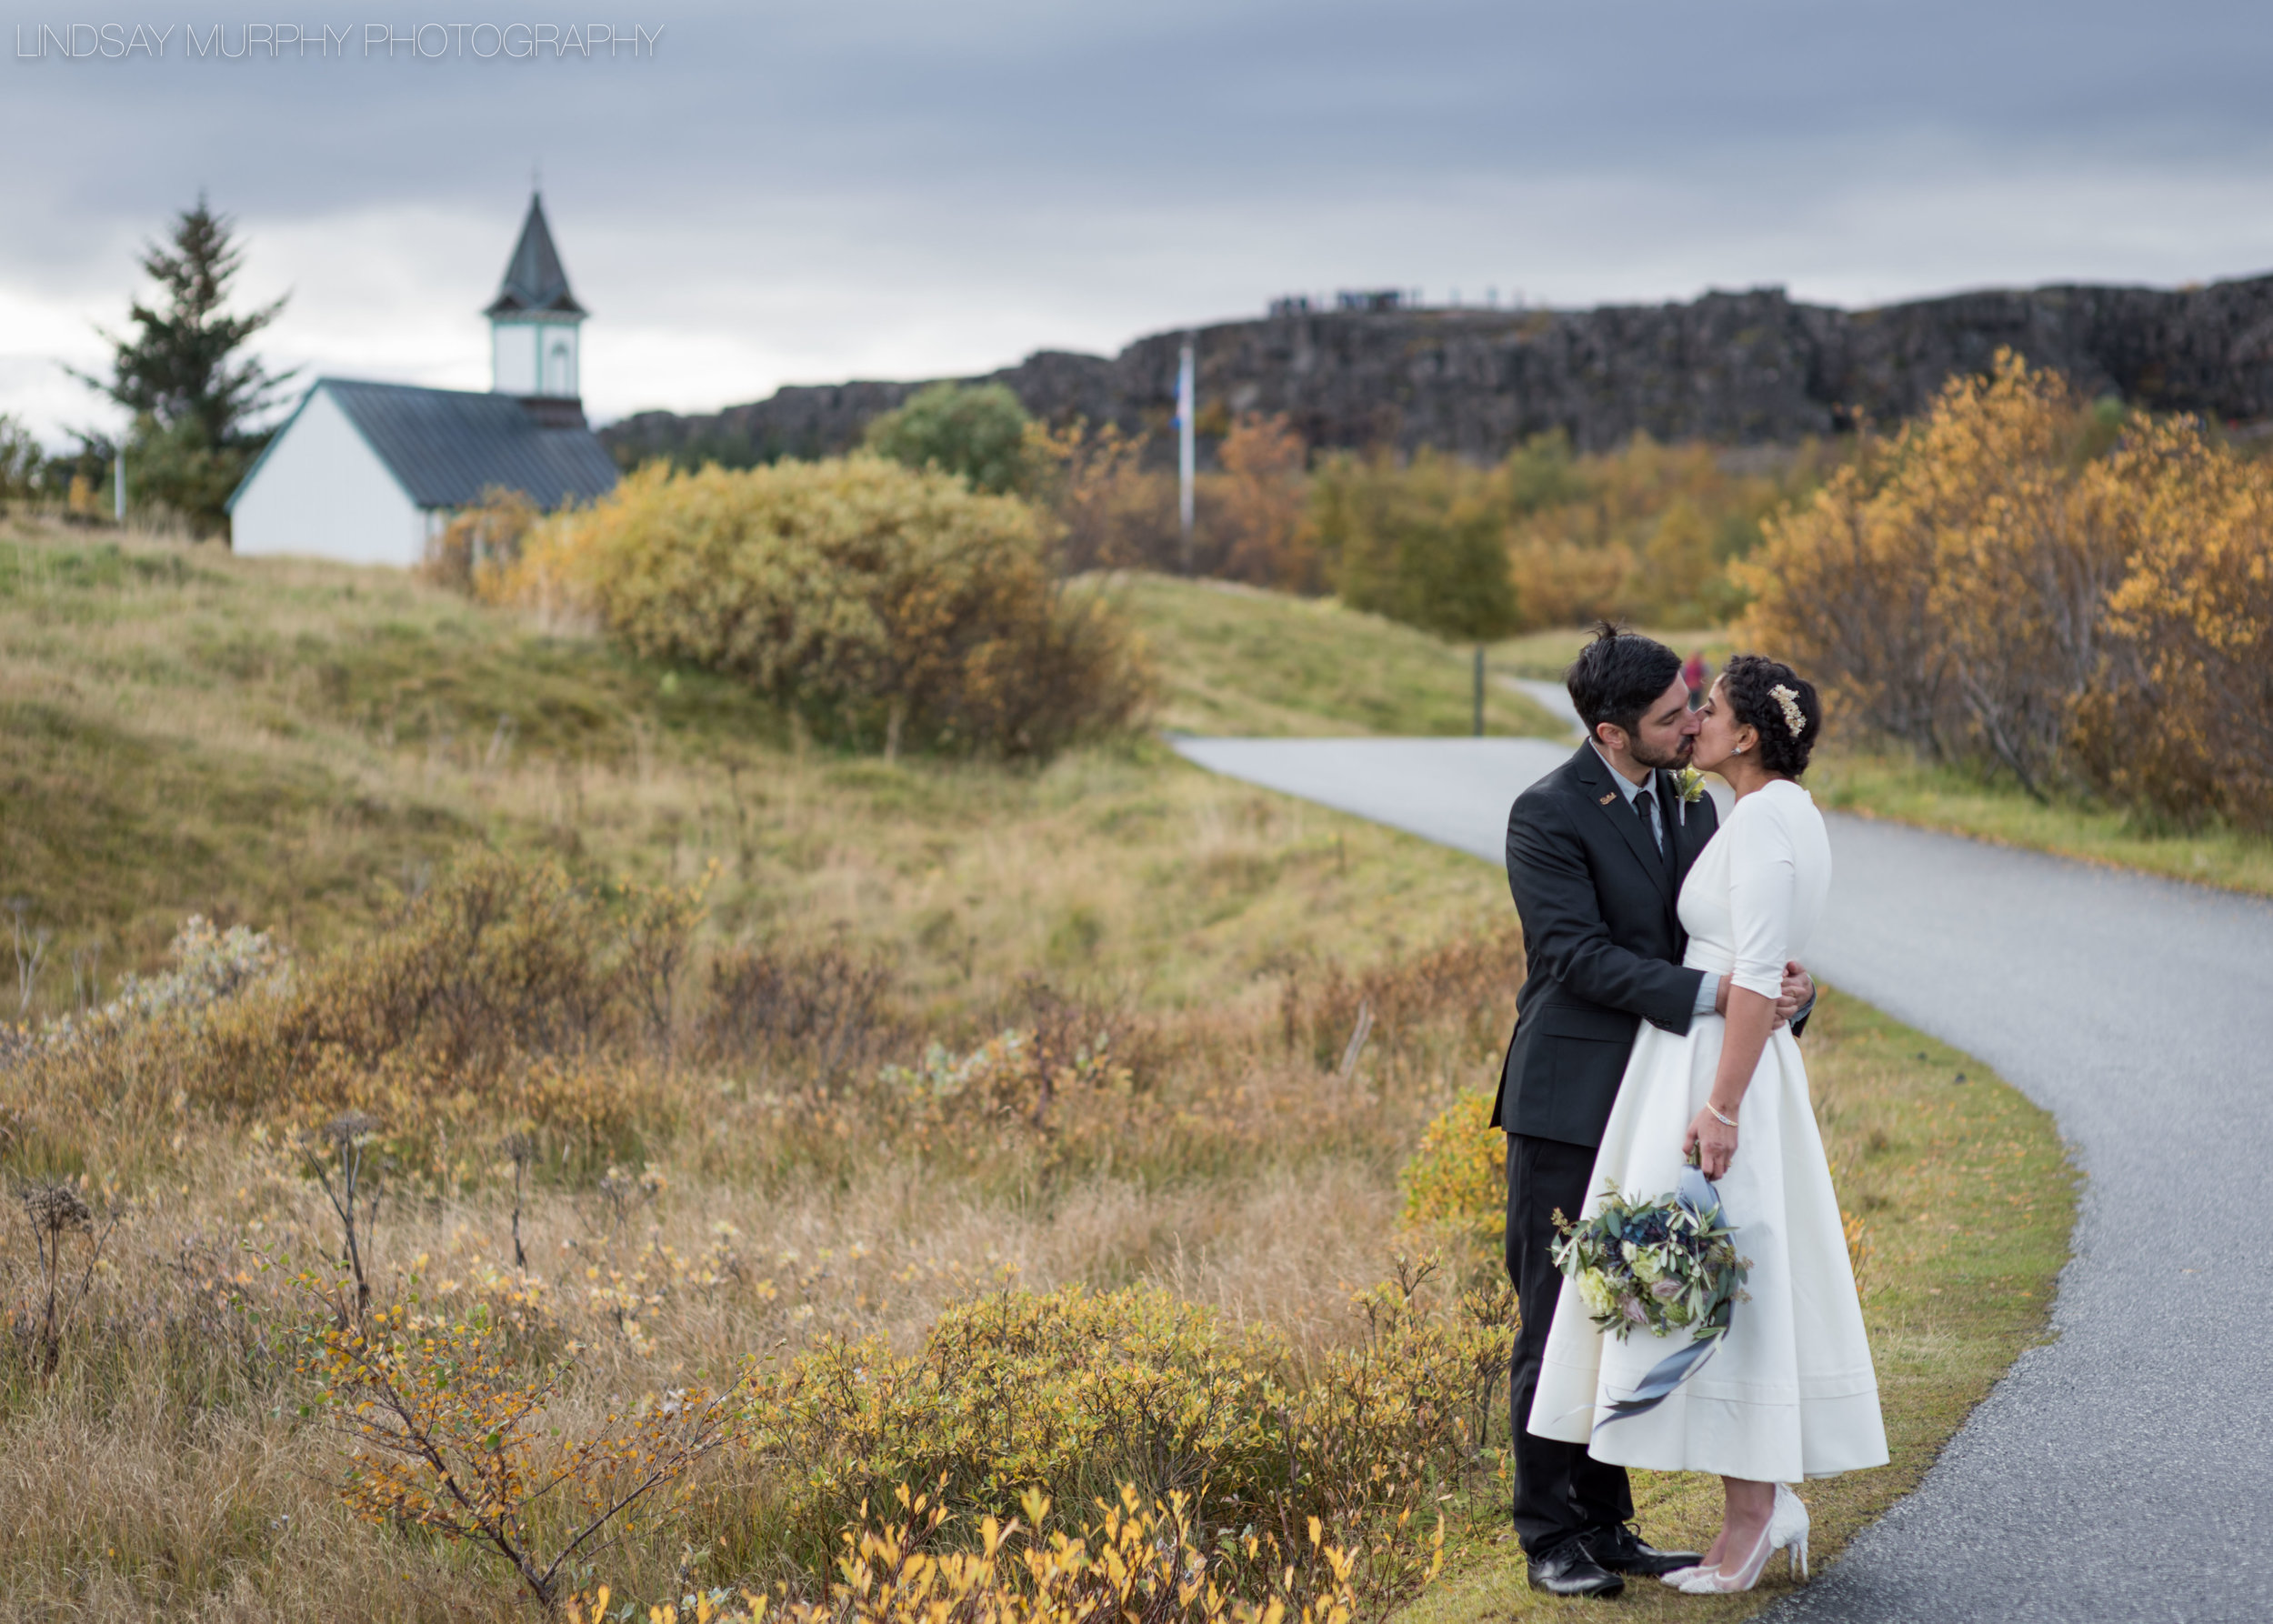 Destination_Iceland_Adventure_Wedding-378.jpg